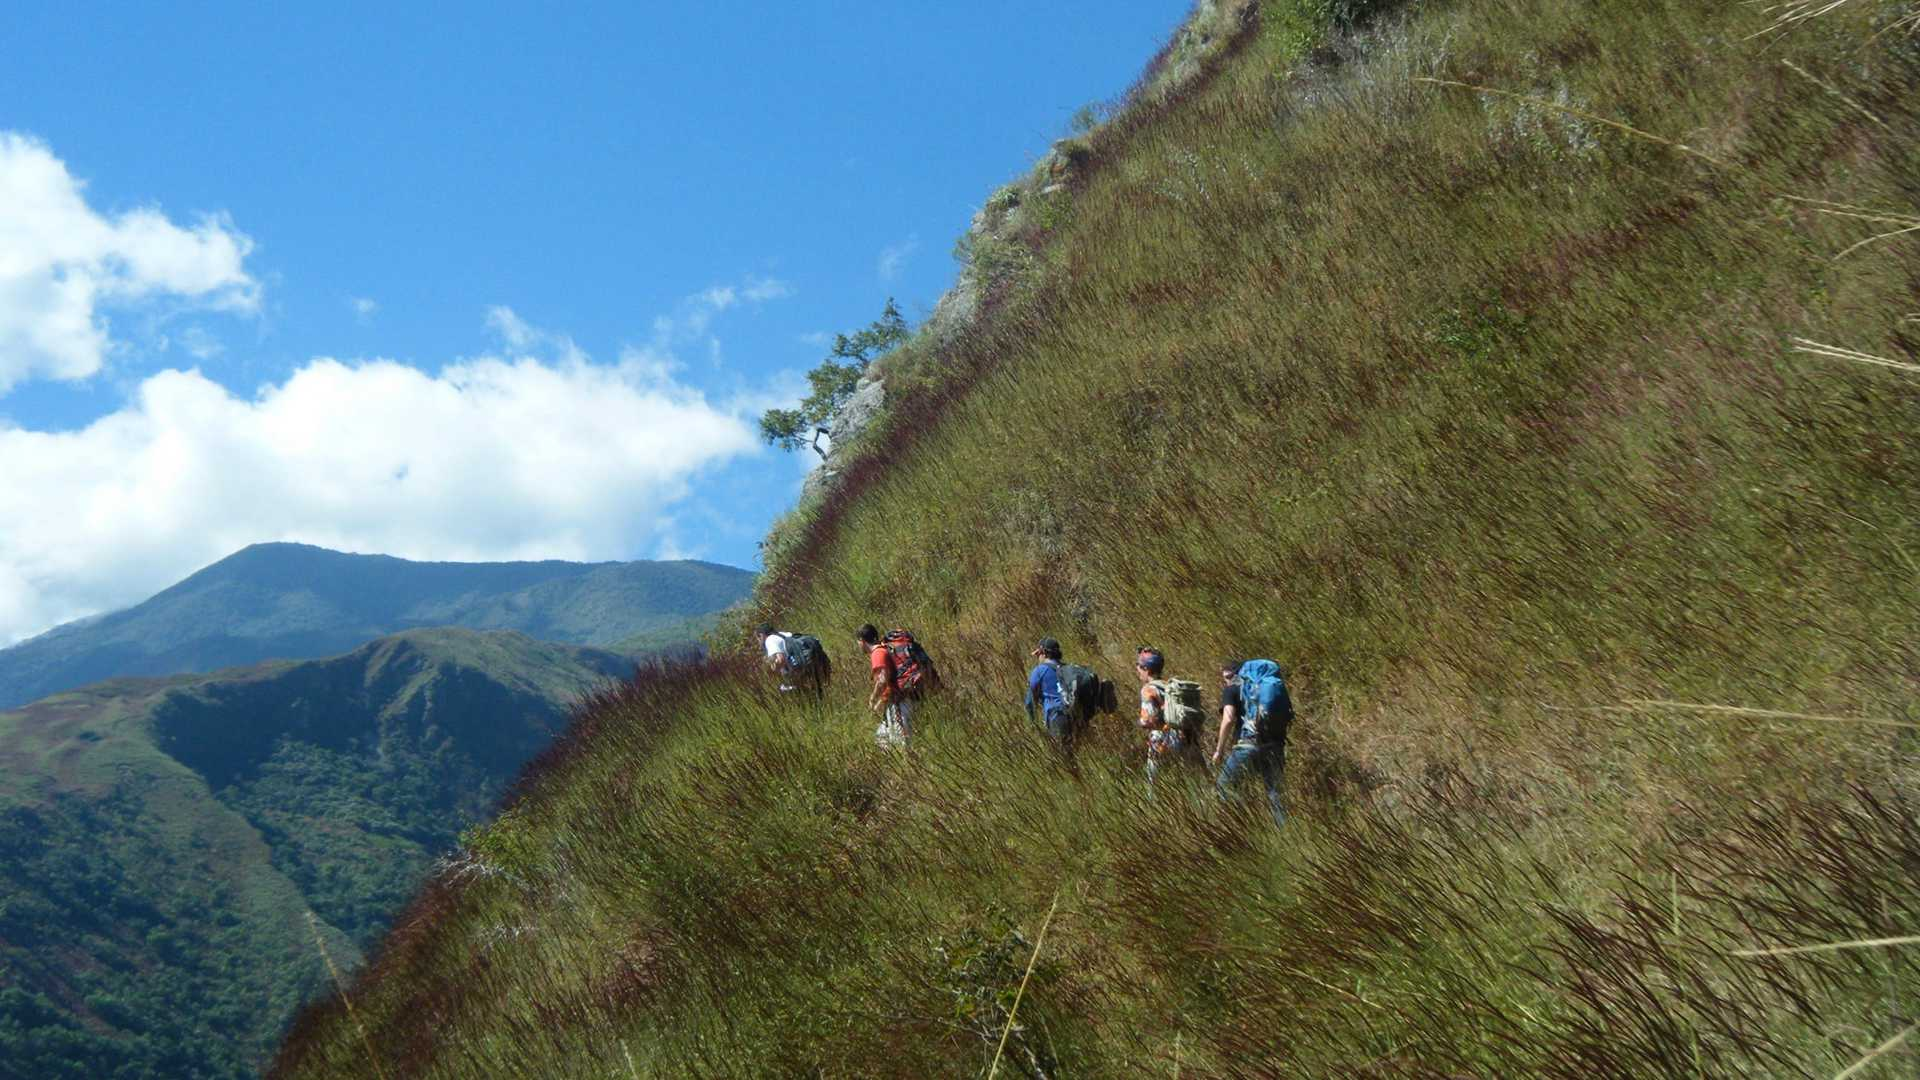 A Section of Inca Trail on the Inca Jungle Trail to Machu Picchu